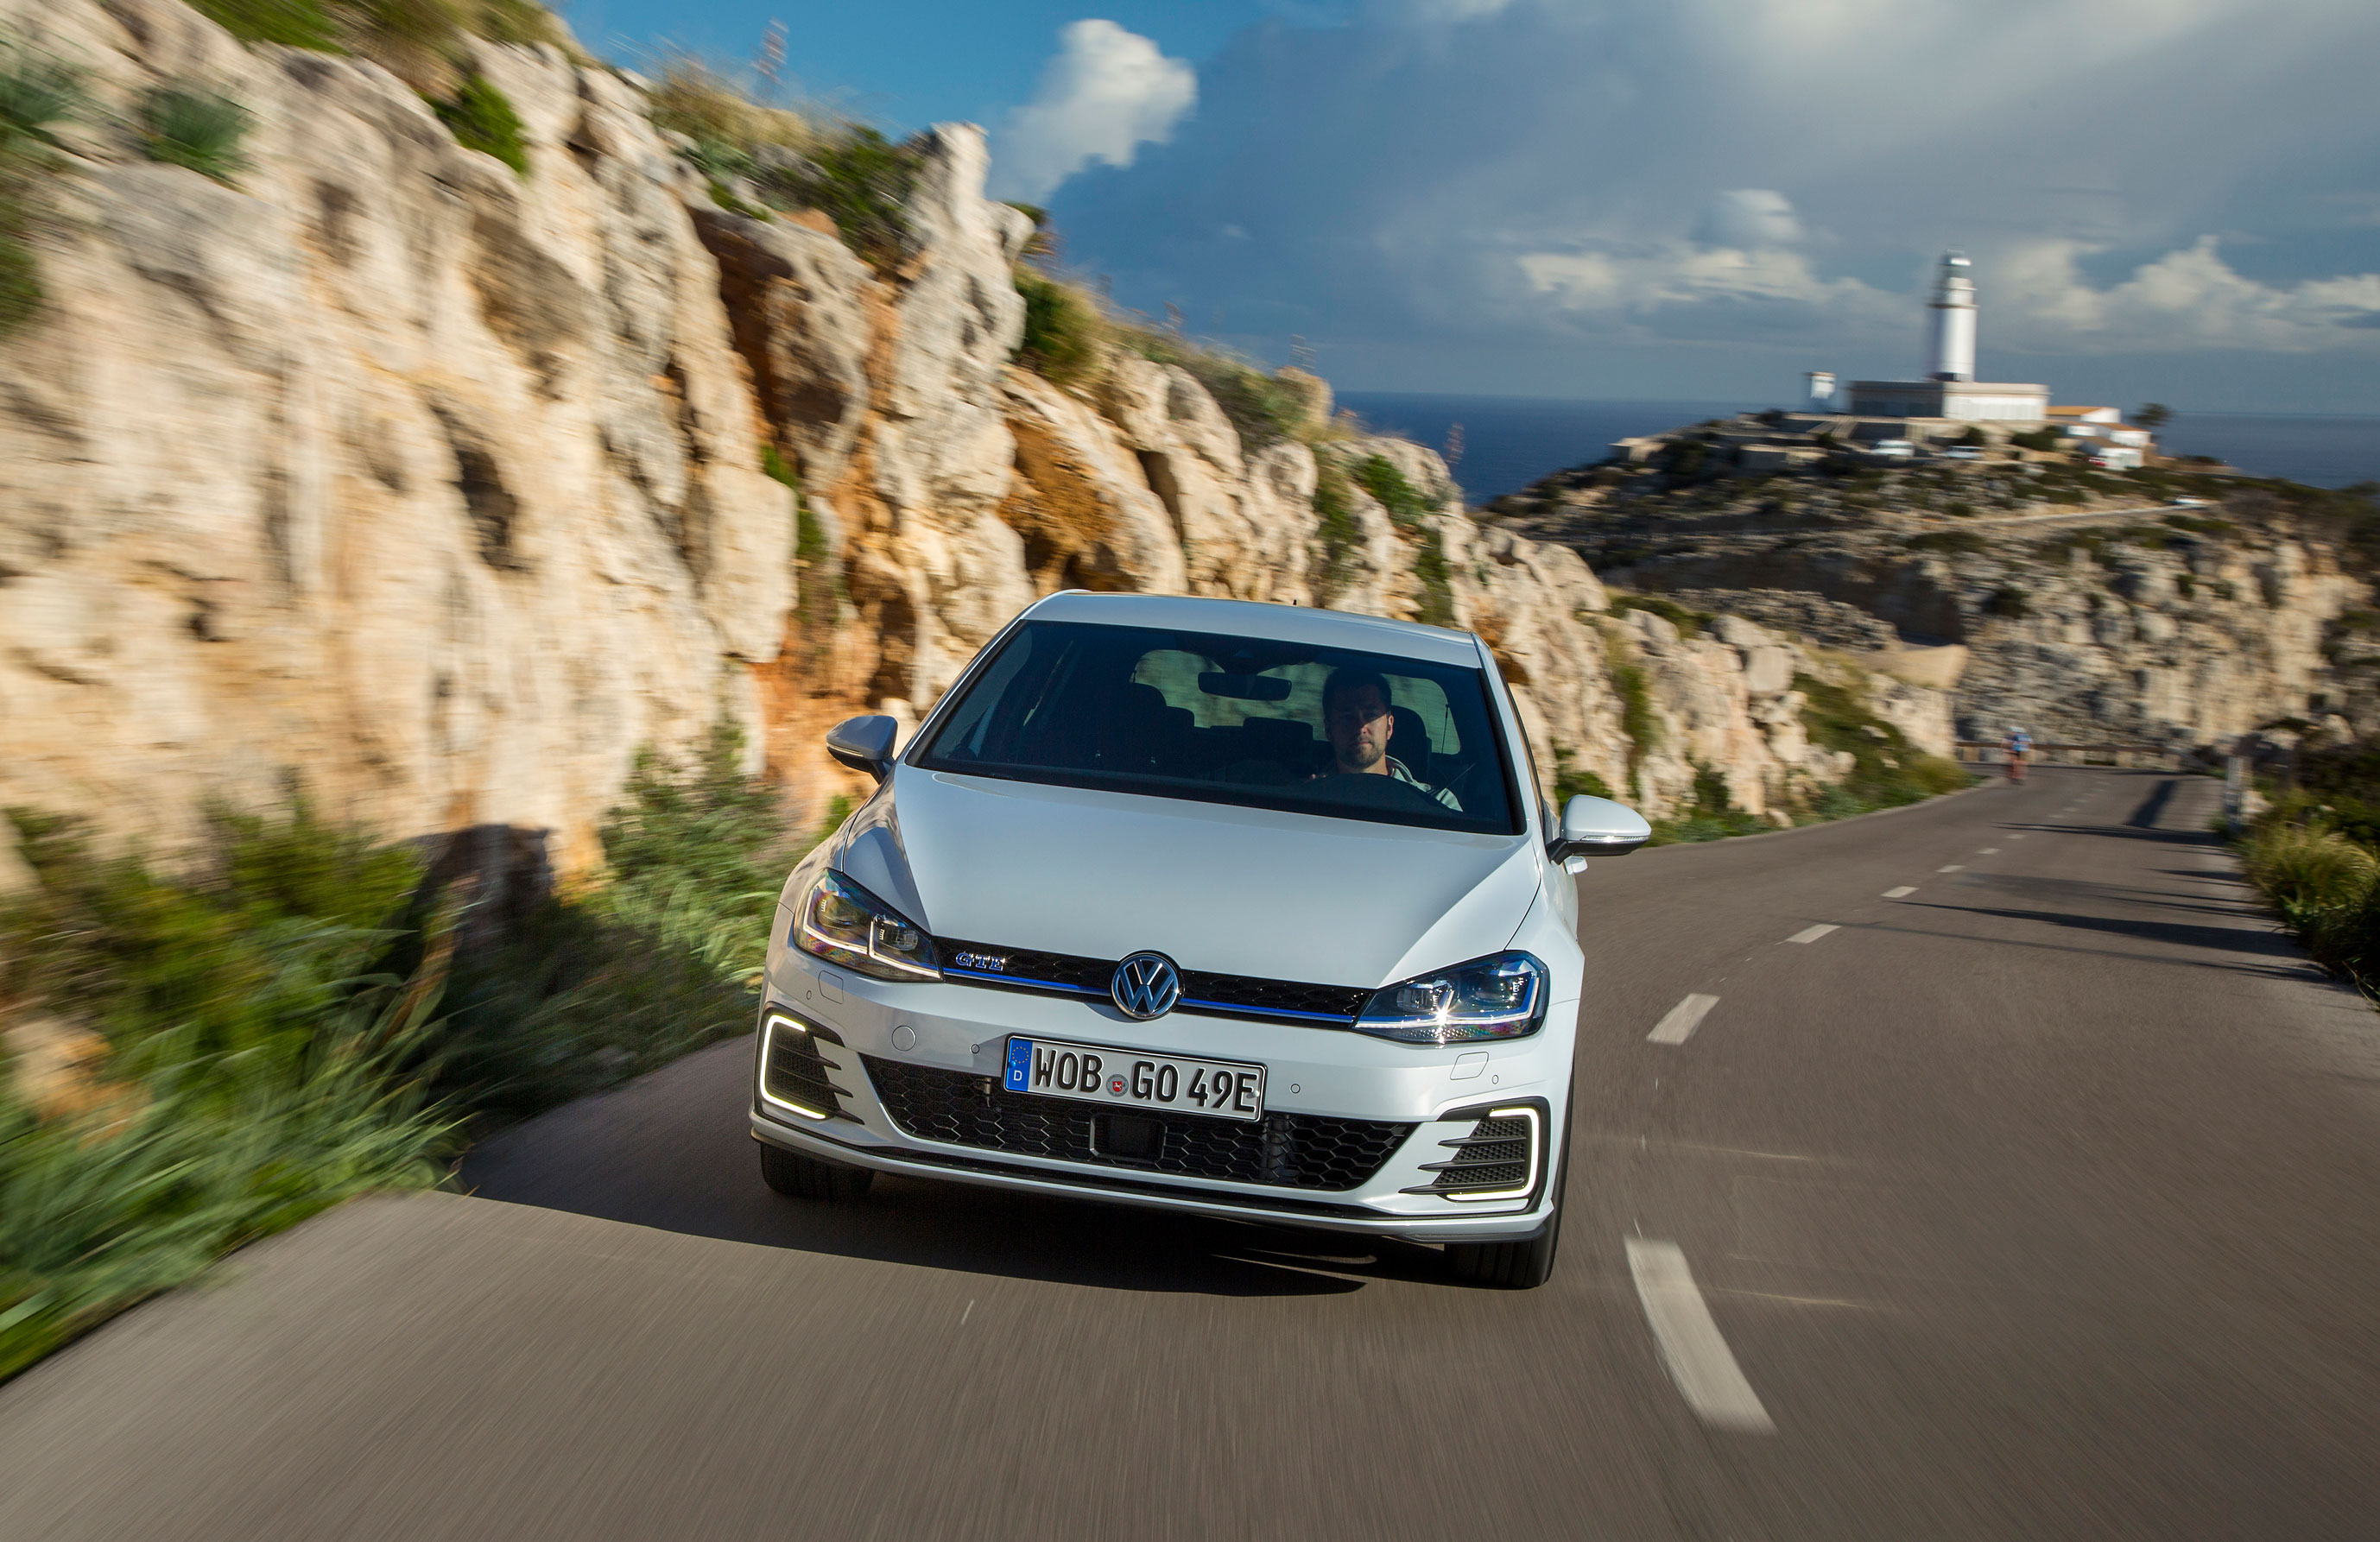 2017 Volkswagen Golf GTE review - Can the plug-in hybrid GTE